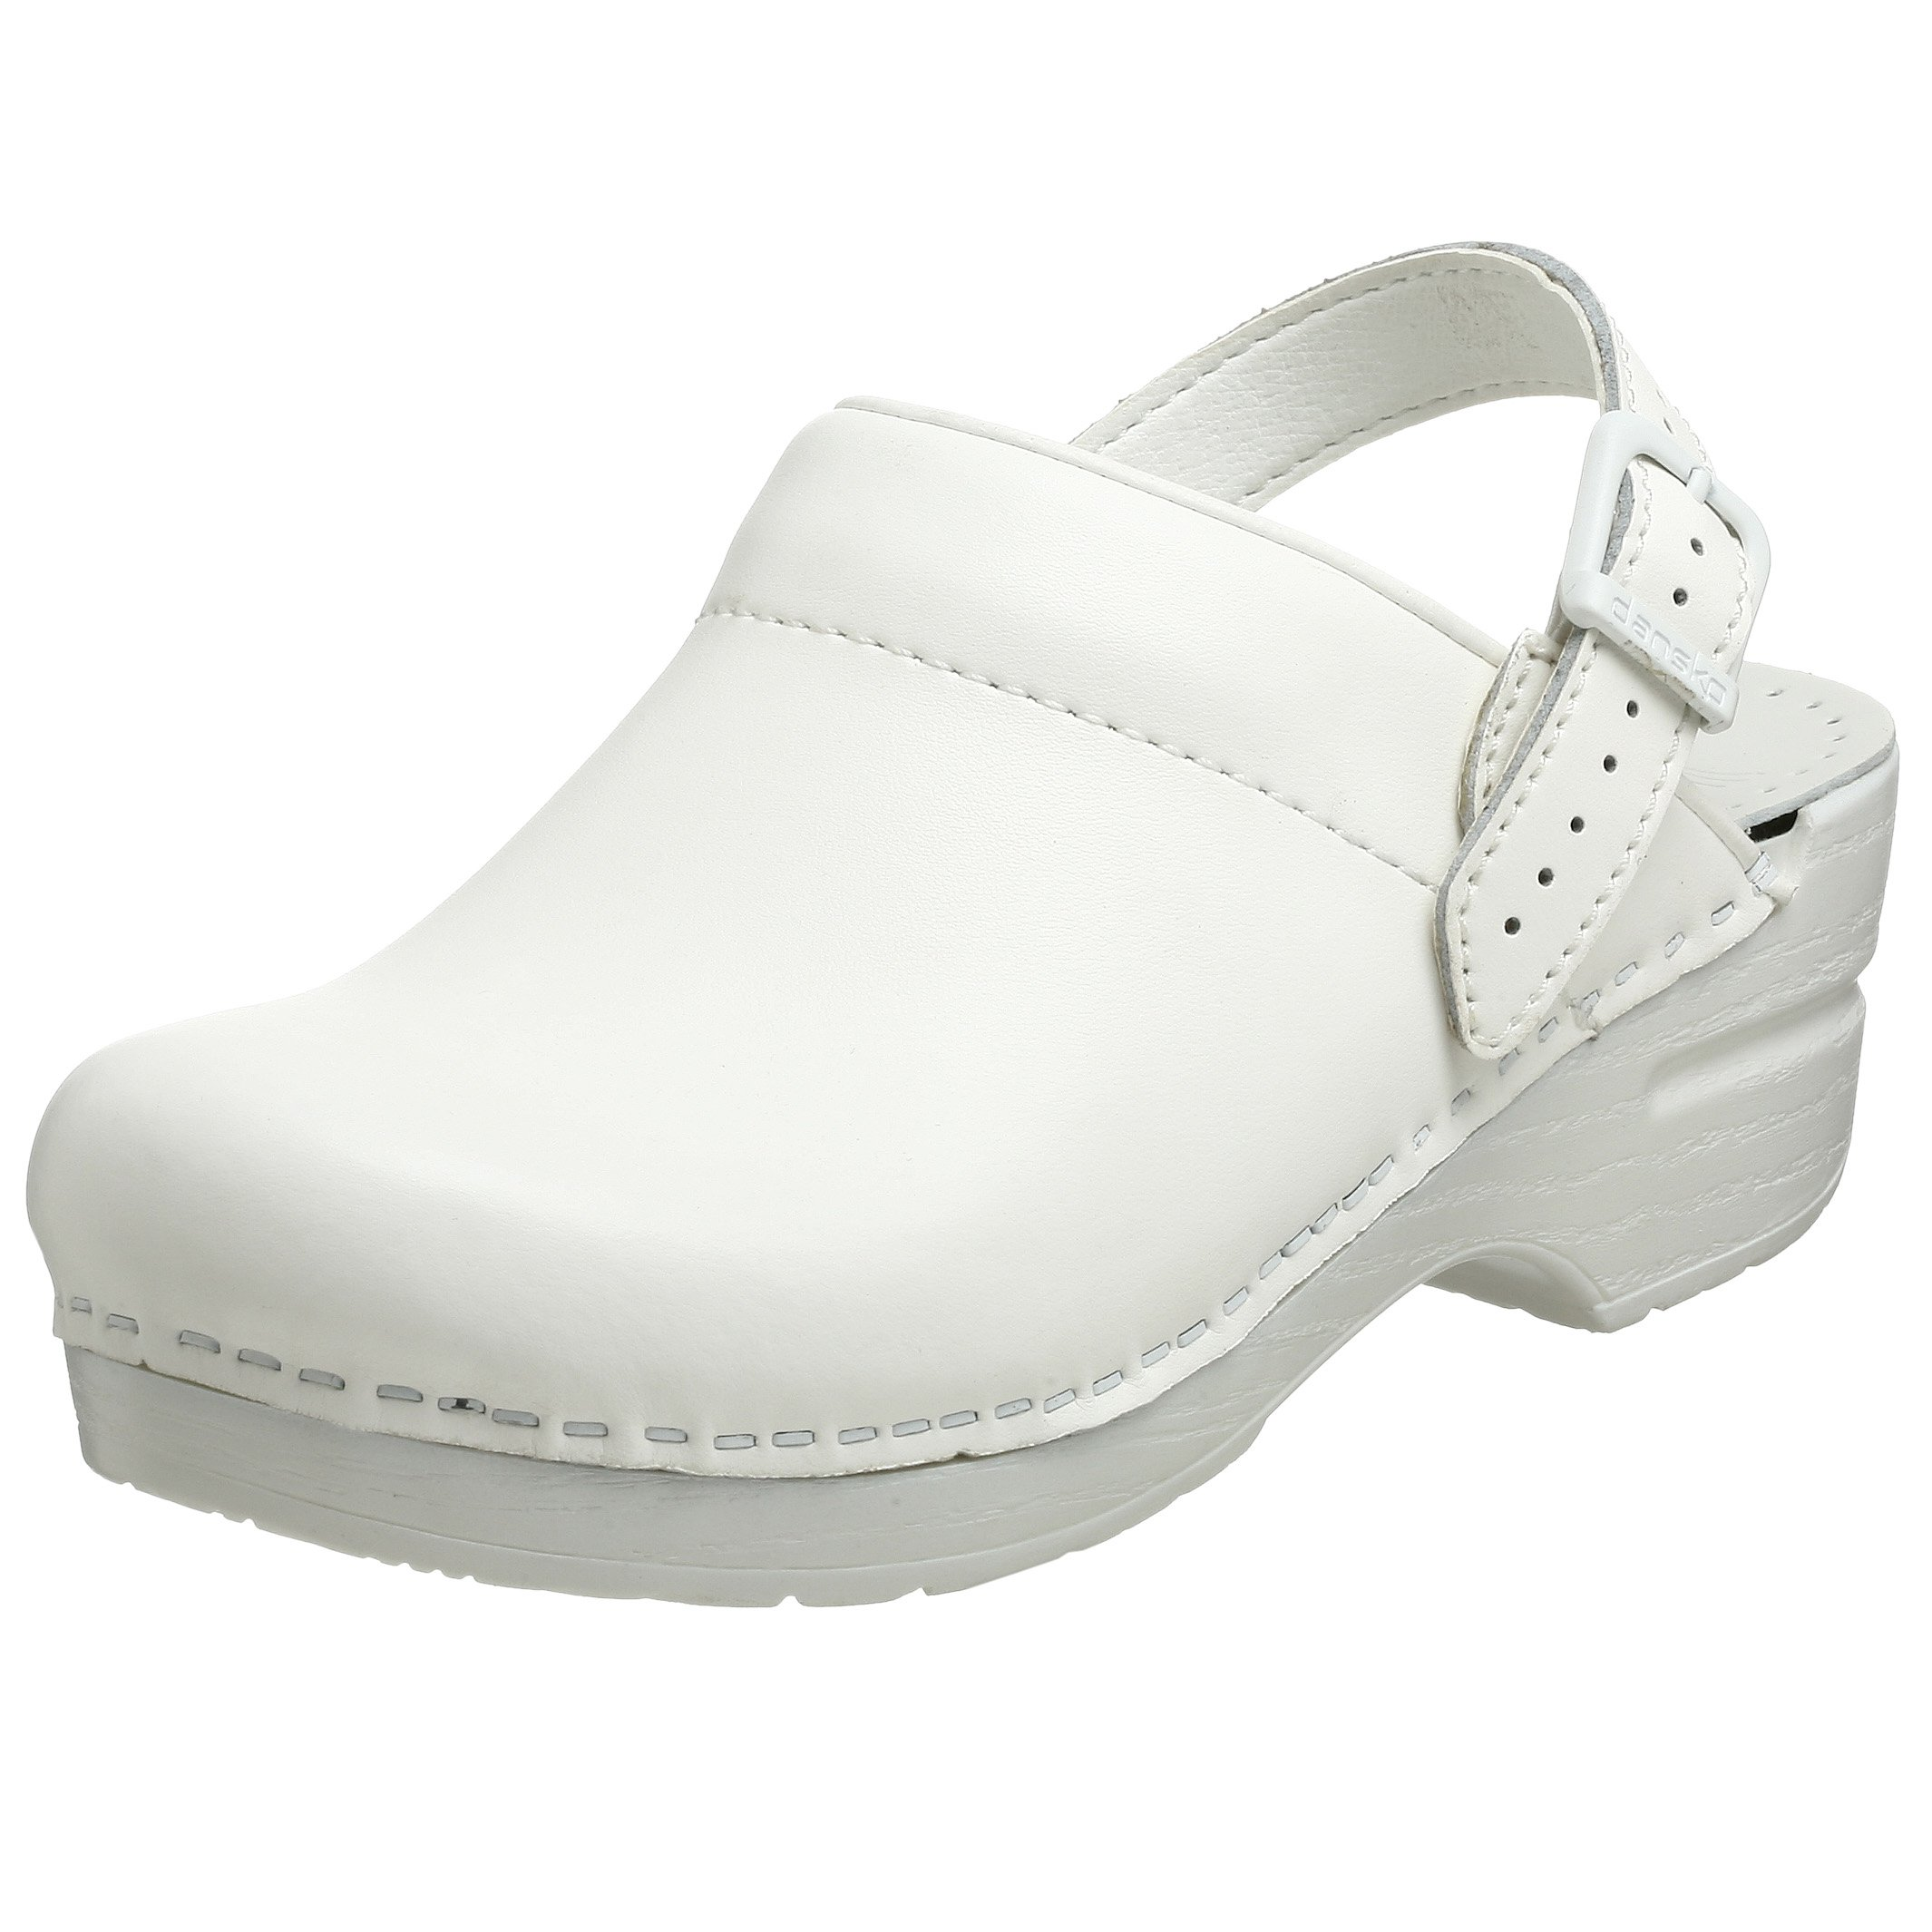 Dansko Womens Ingrid Box White - 42 M EU